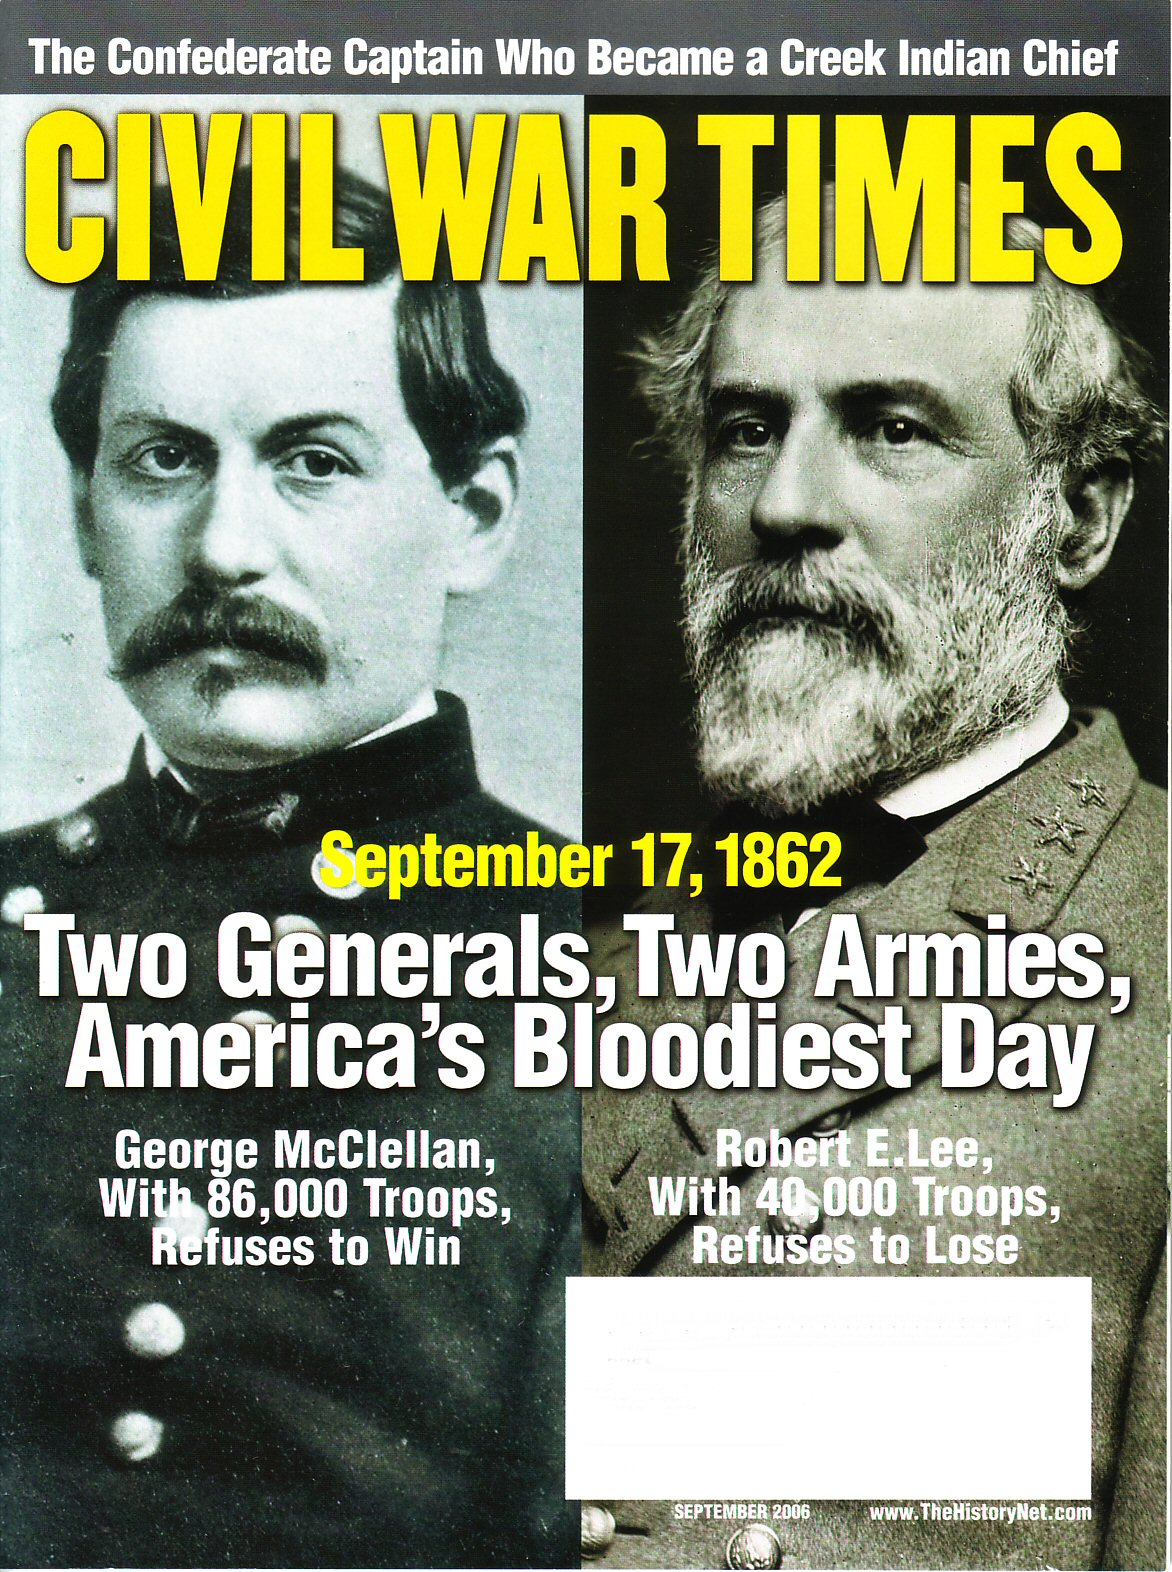 Civil War Times, Volume 45, Number 7 (September 2006)